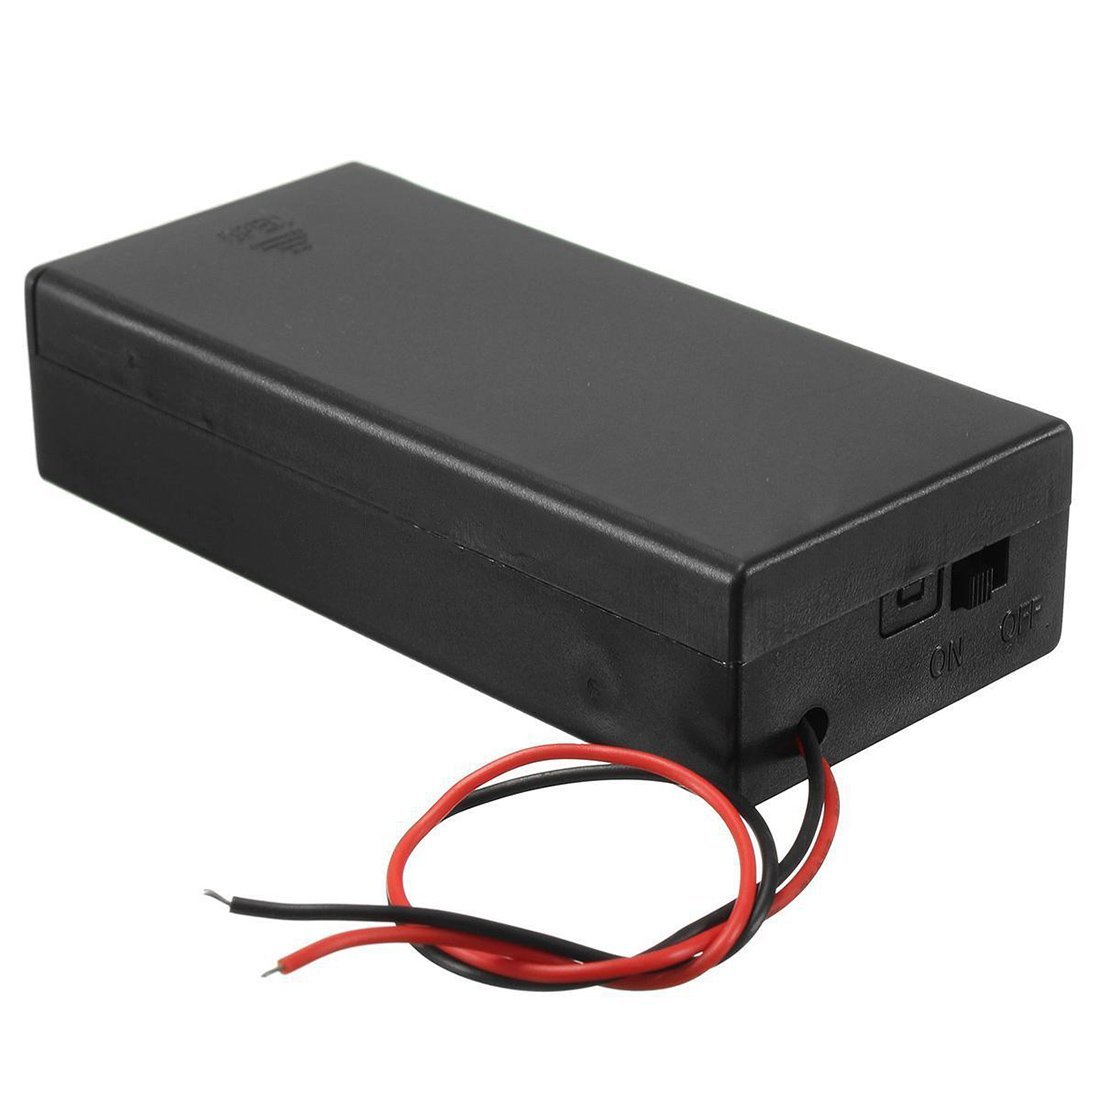 18650 x 2 battery holder with cover and OnOff Switch